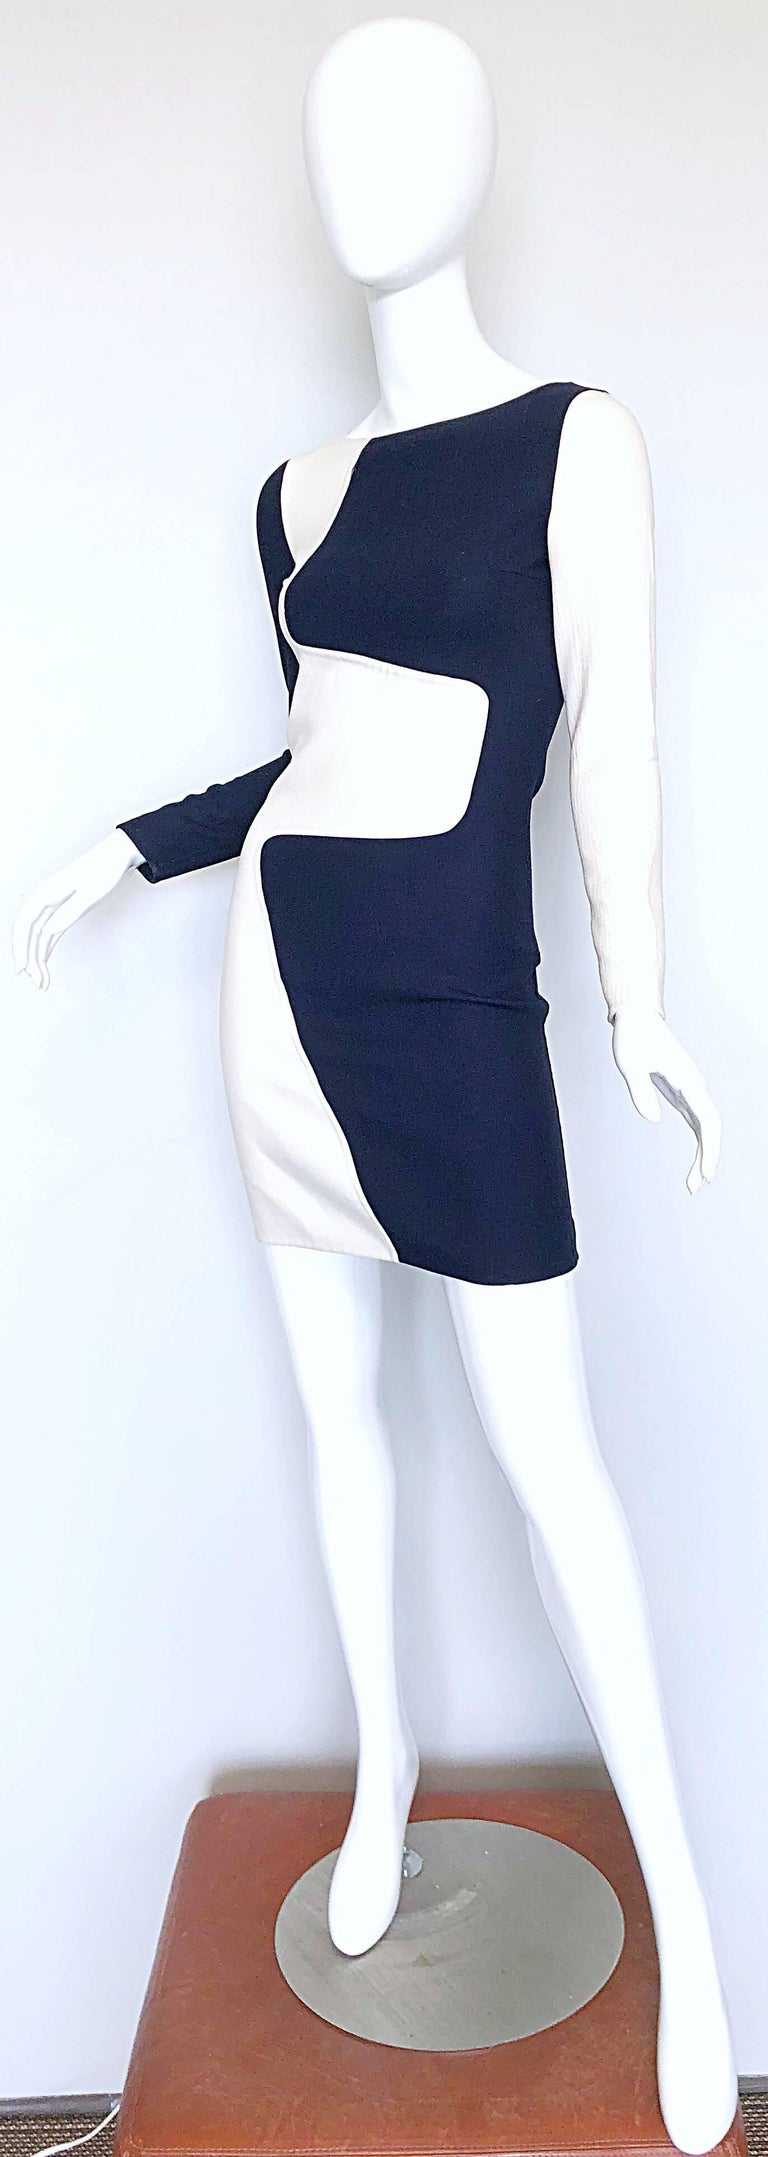 Gray Michael Kors Collection Spring 2013 Size 0 / 2 Navy Blue and White Puzzle Dress For Sale